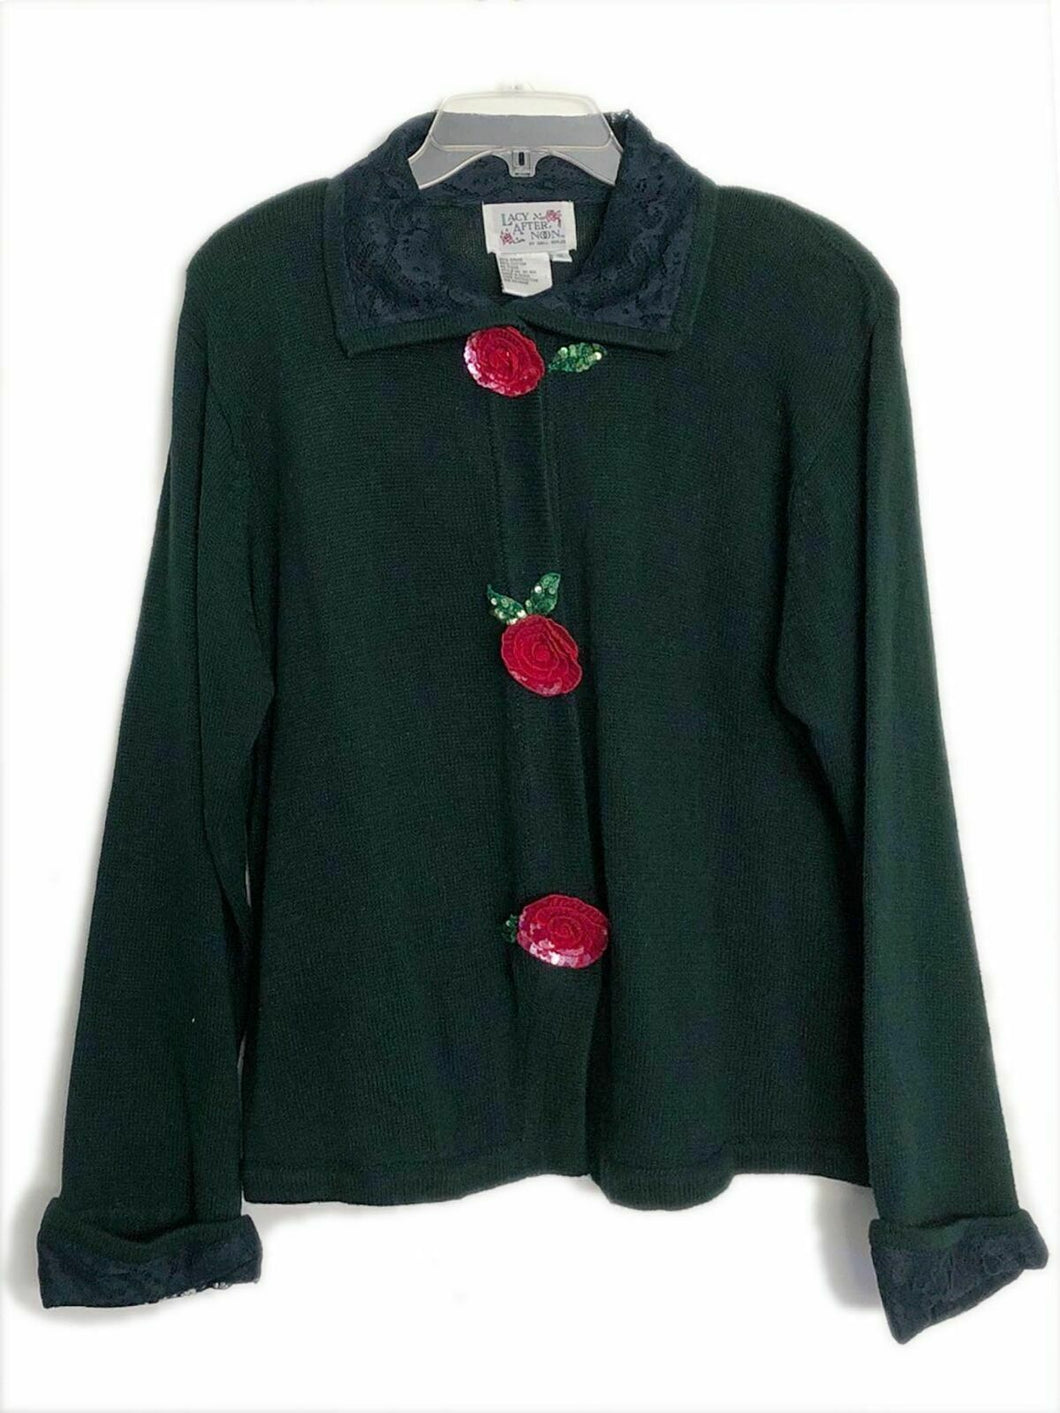 Lacy Afternoon Shell Kepler Vintage Sweater jacket art to wear green sz 1X NEW